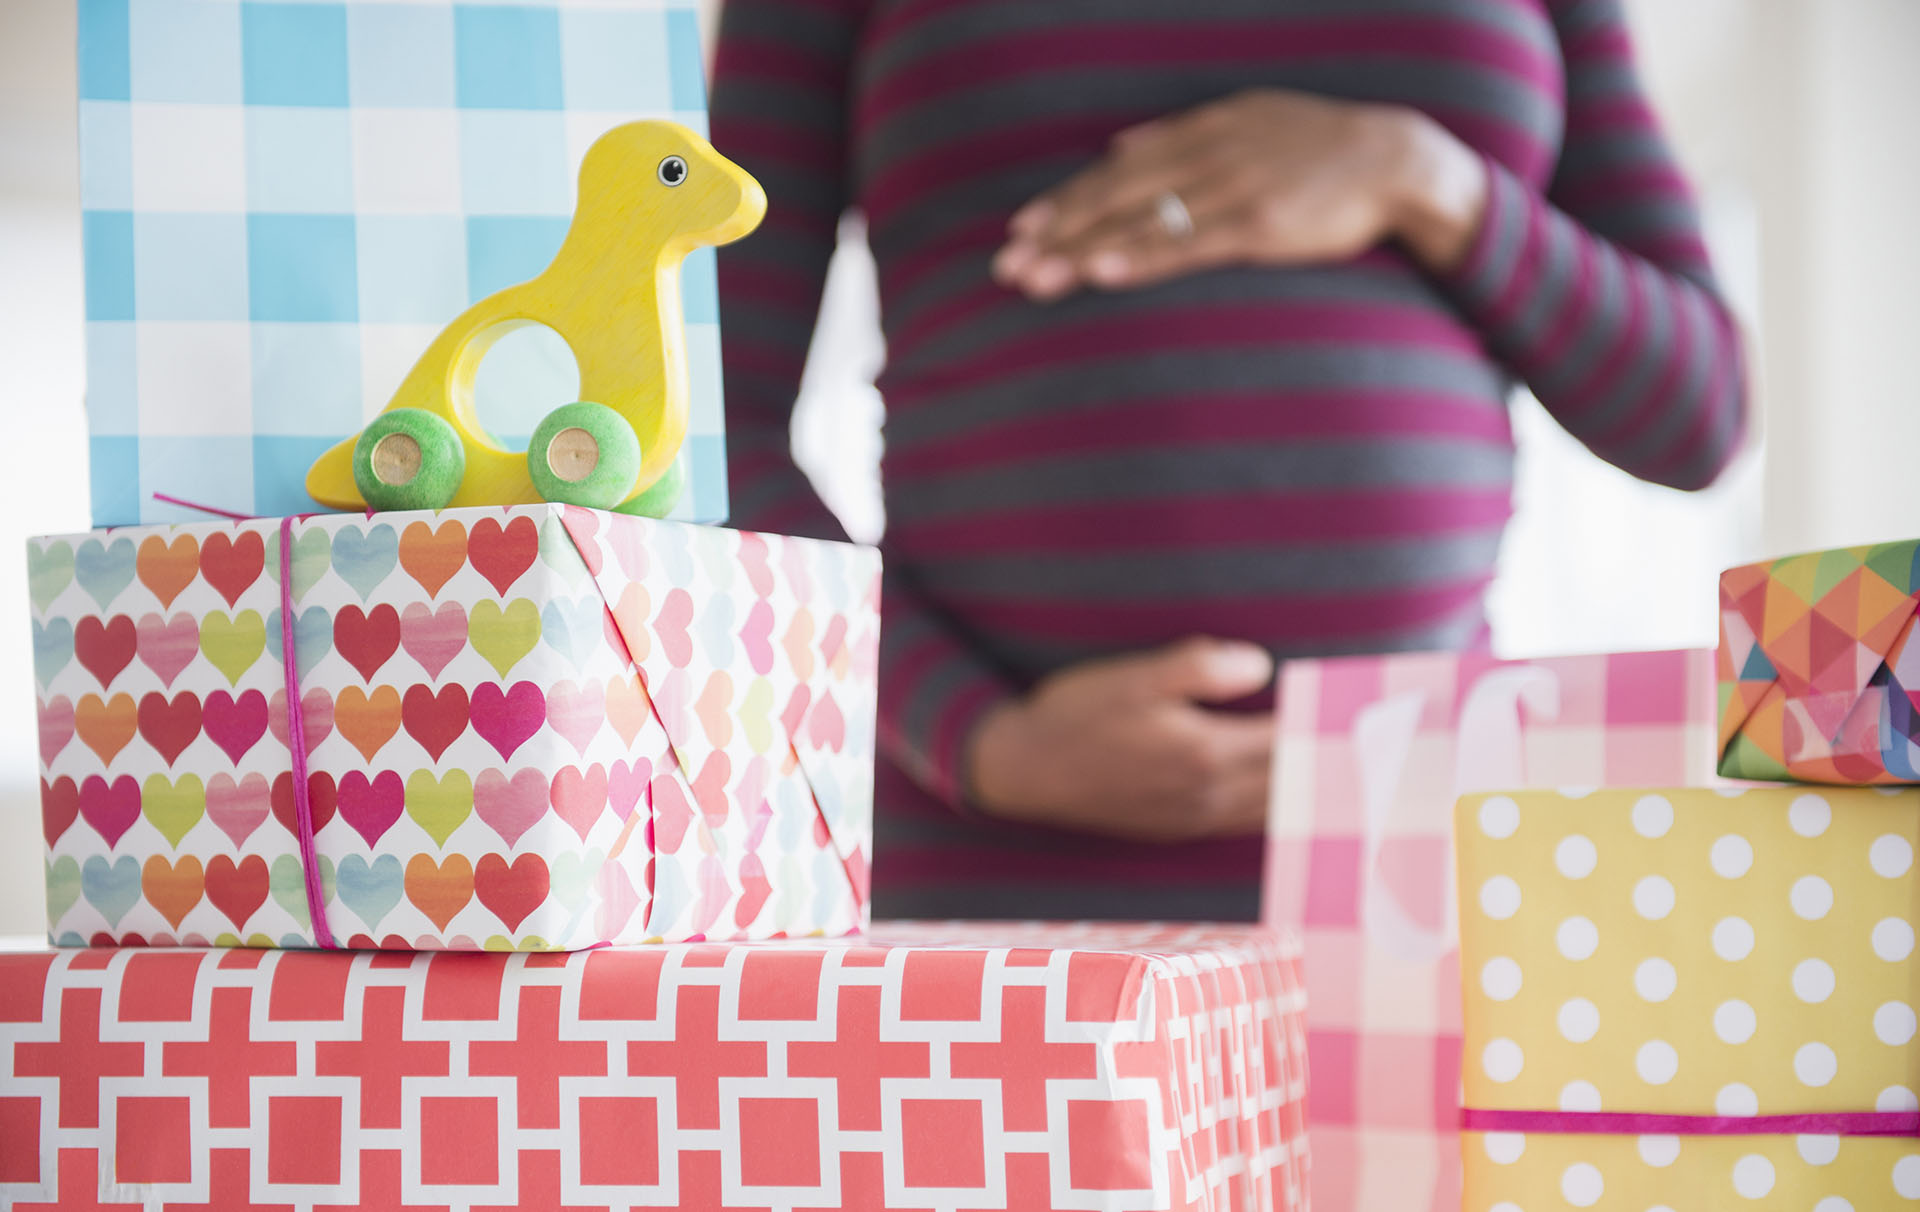 mum cancels baby shower after unusual baby name criticism